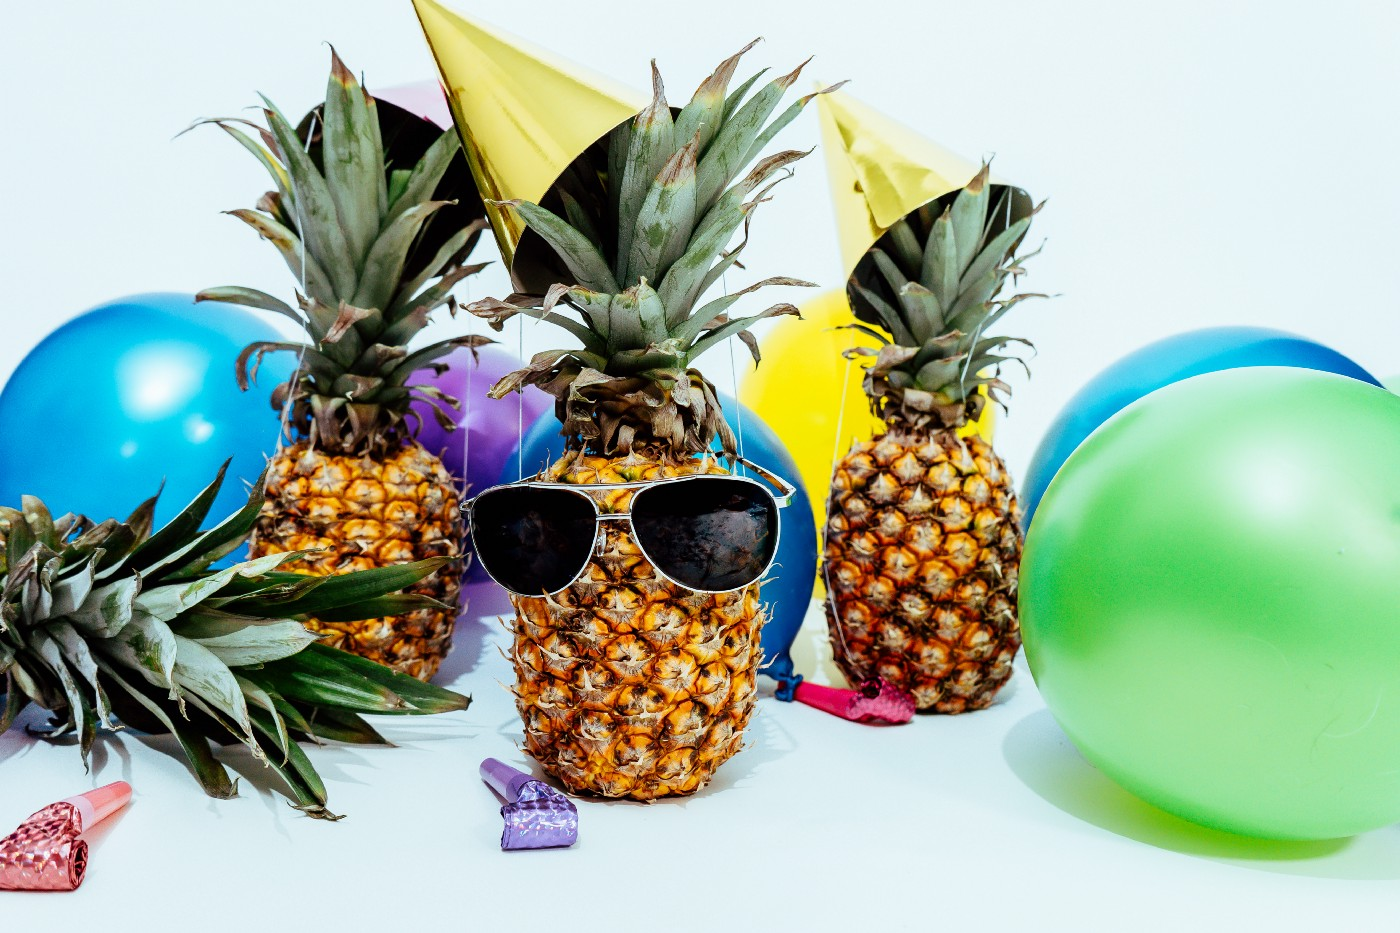 A header image from Unsplash—shows a pineapple with balloons